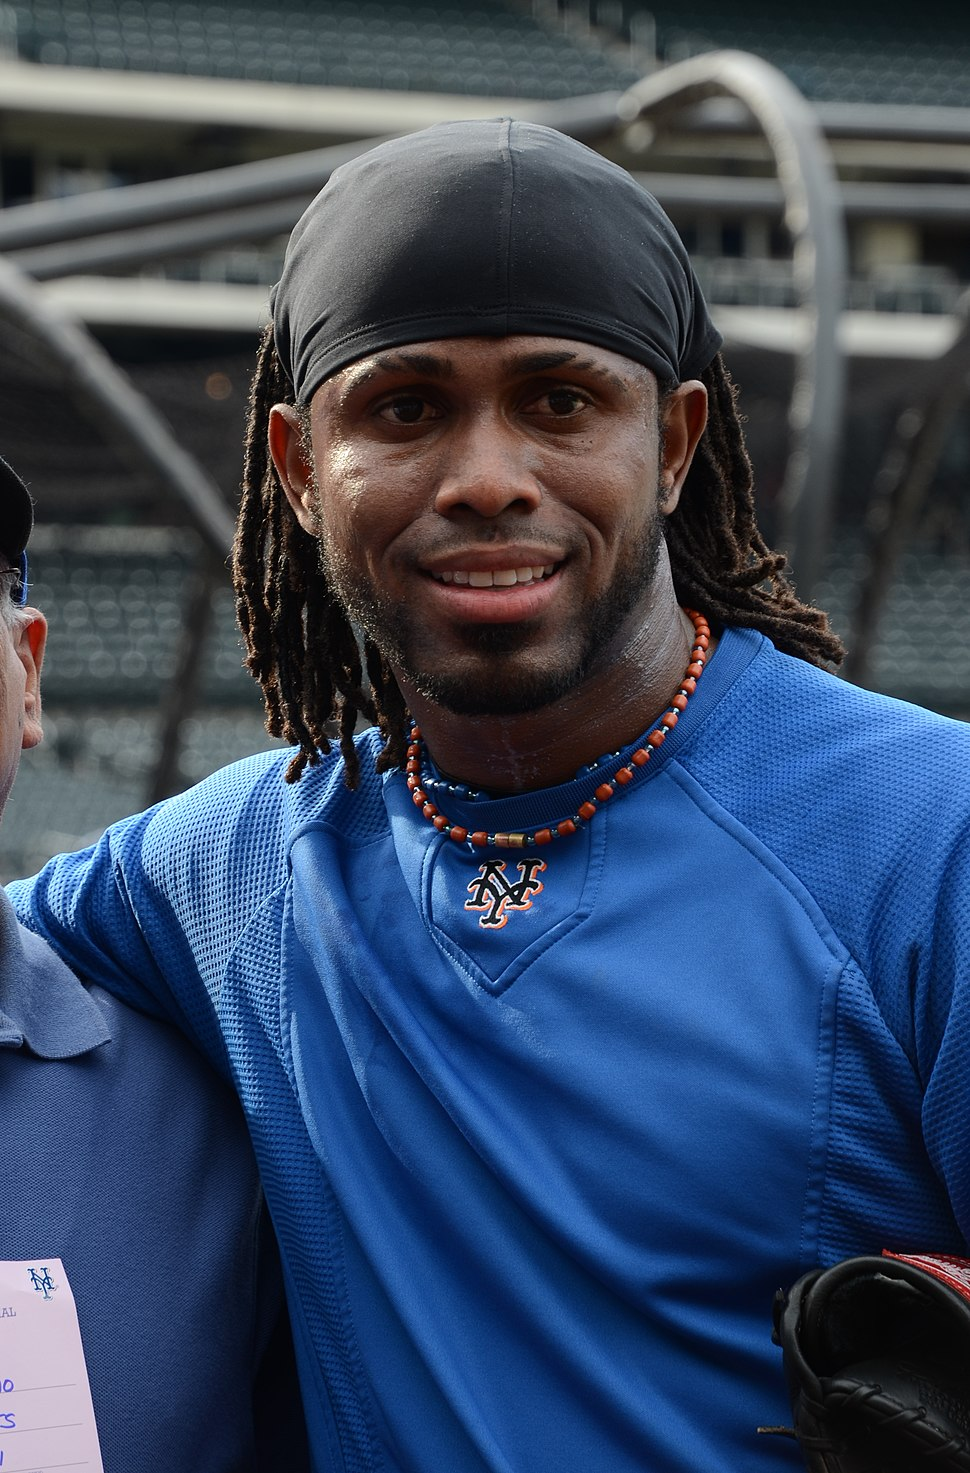 José Reyes on September 1, 2011